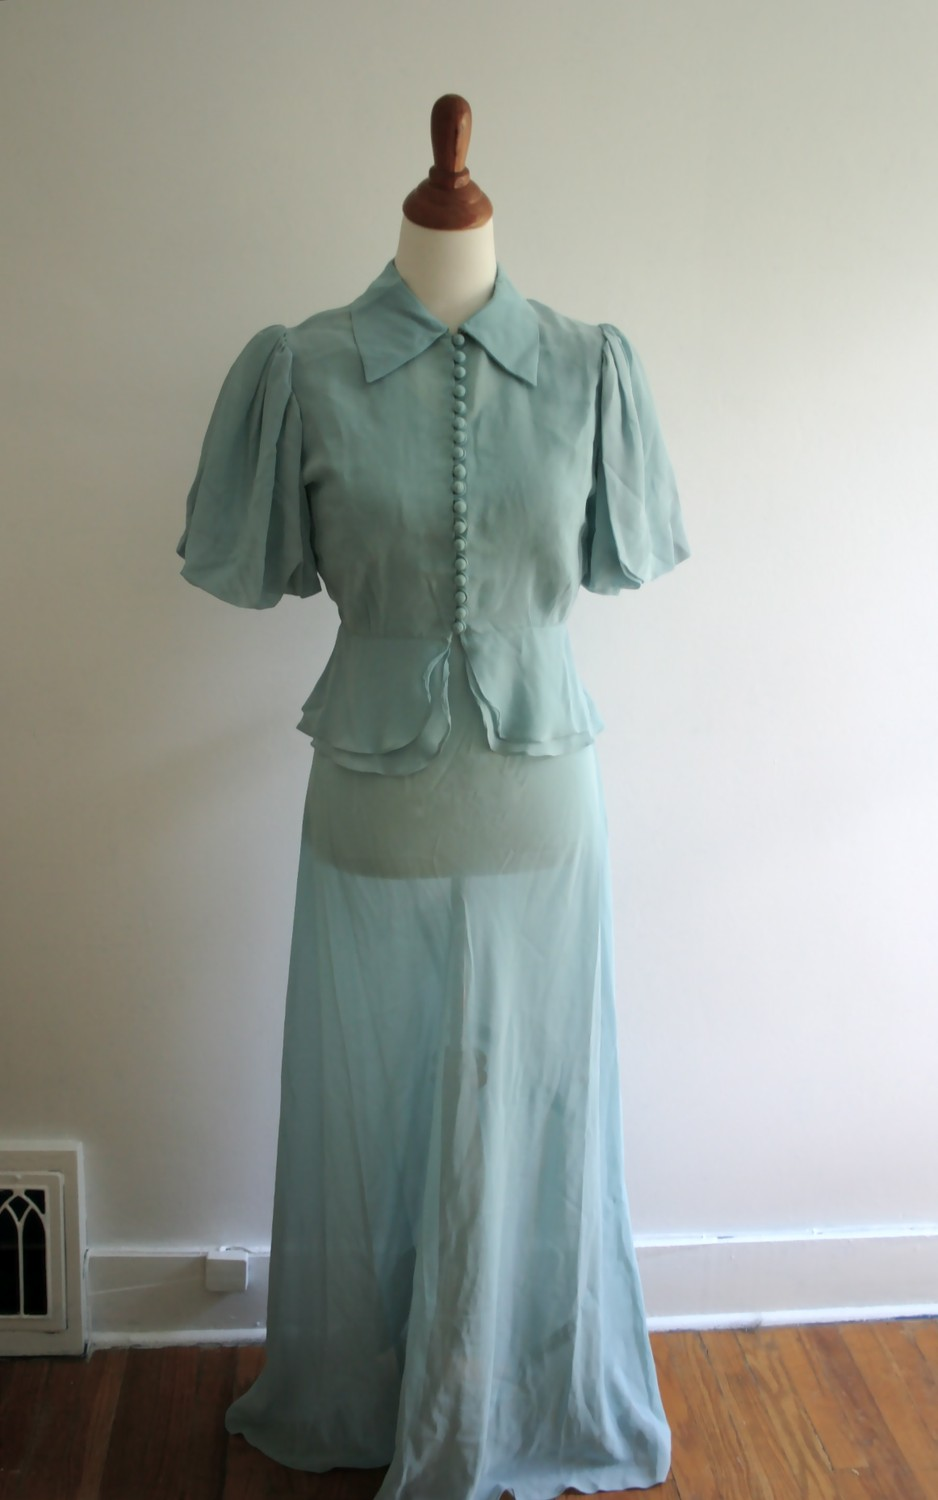 pettigrew girls Then suiting up in this almost-prim blue dress and heart-shaped hat, as if to show her as a innocent good girl.